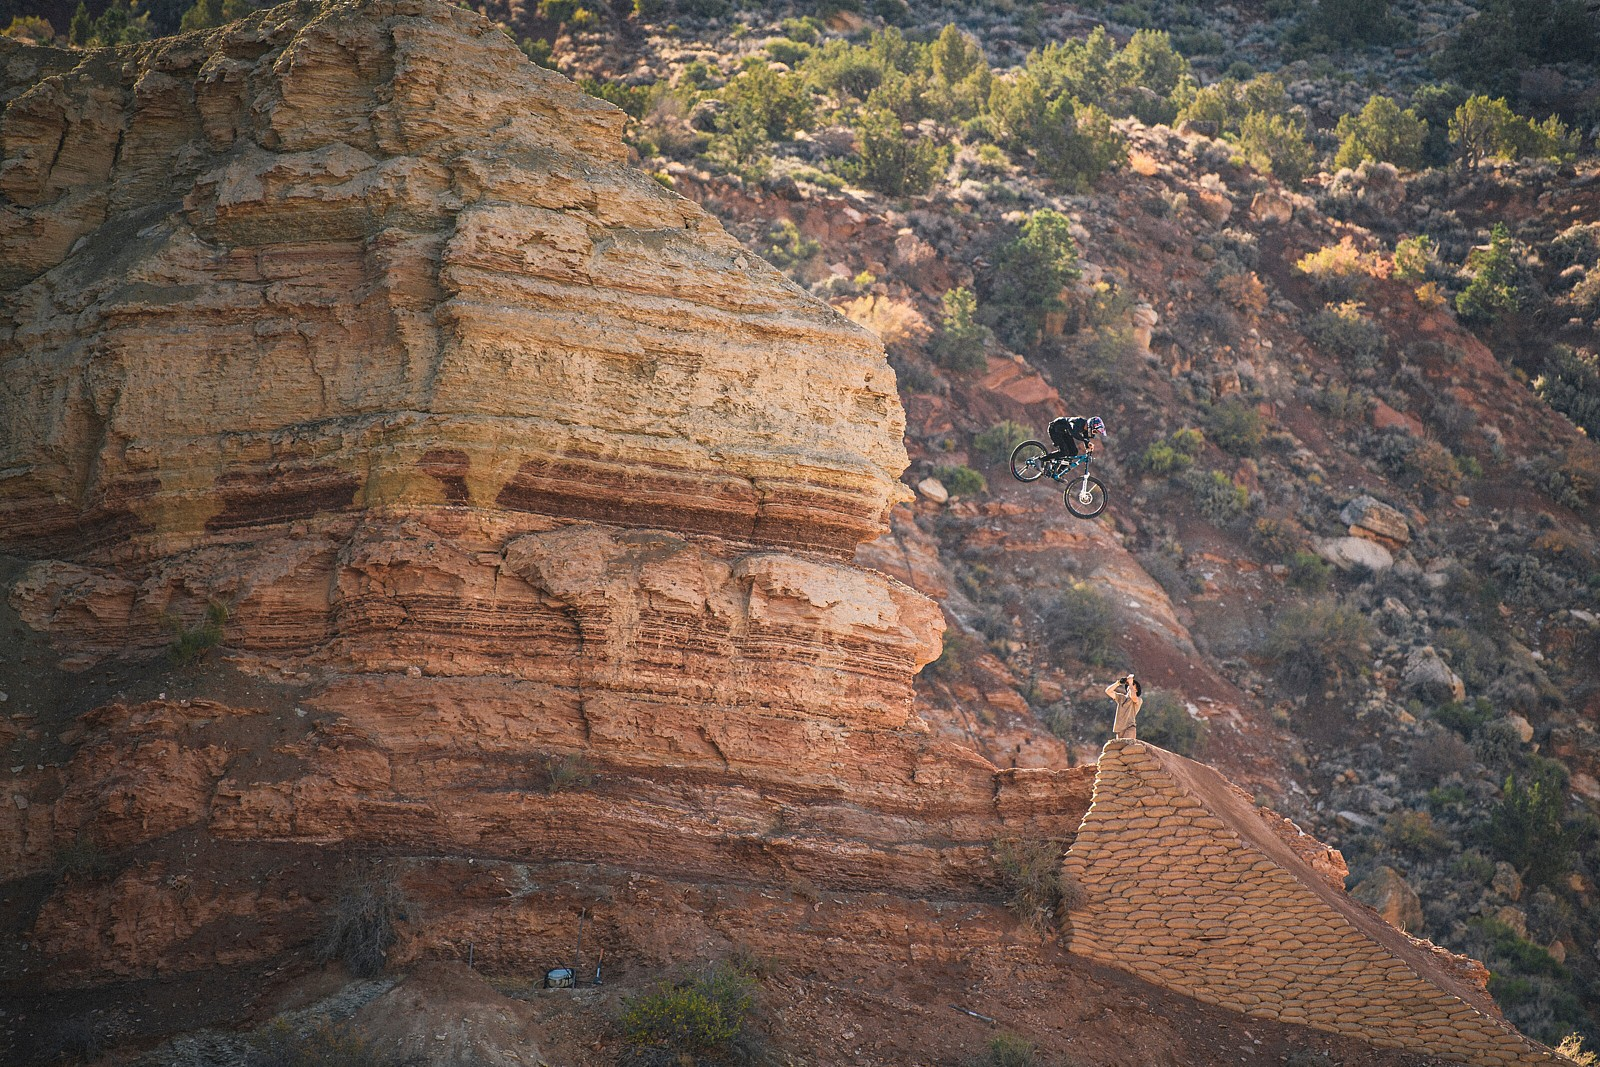 2021 Red Bull Rampage Photo Gallery - Reed Boggs - 2021 Red Bull Rampage Photos - Mountain Biking Pictures - Vital MTB